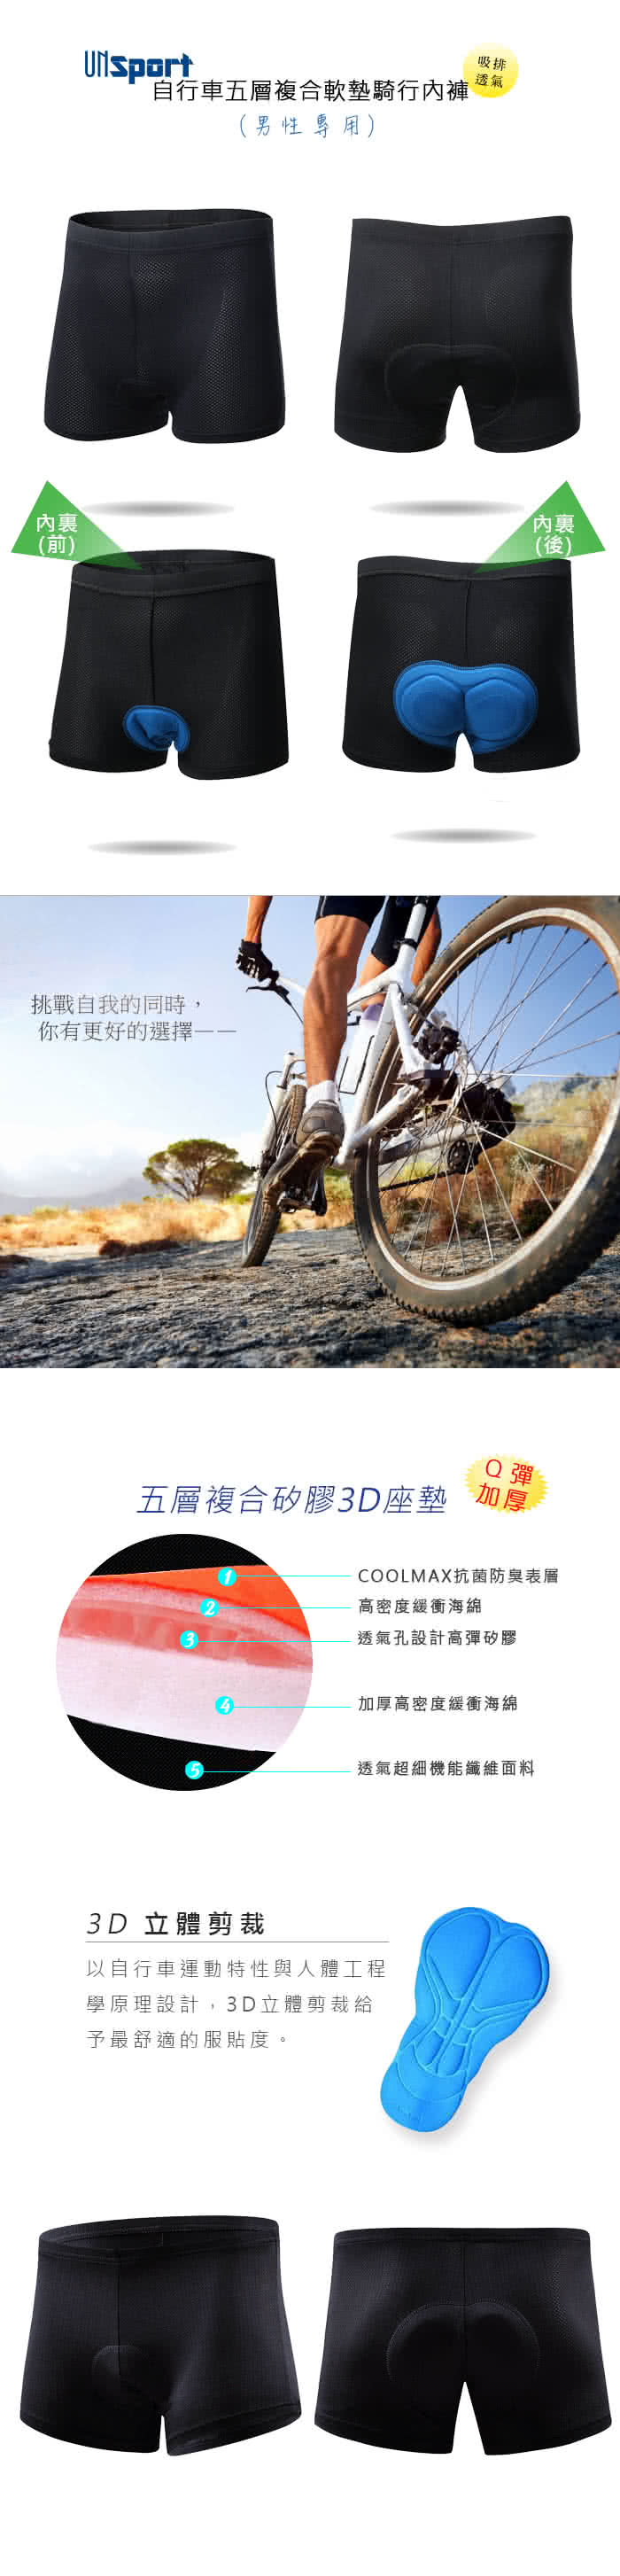 cycling-Underwear_long_01.jpg?t=1490333835236